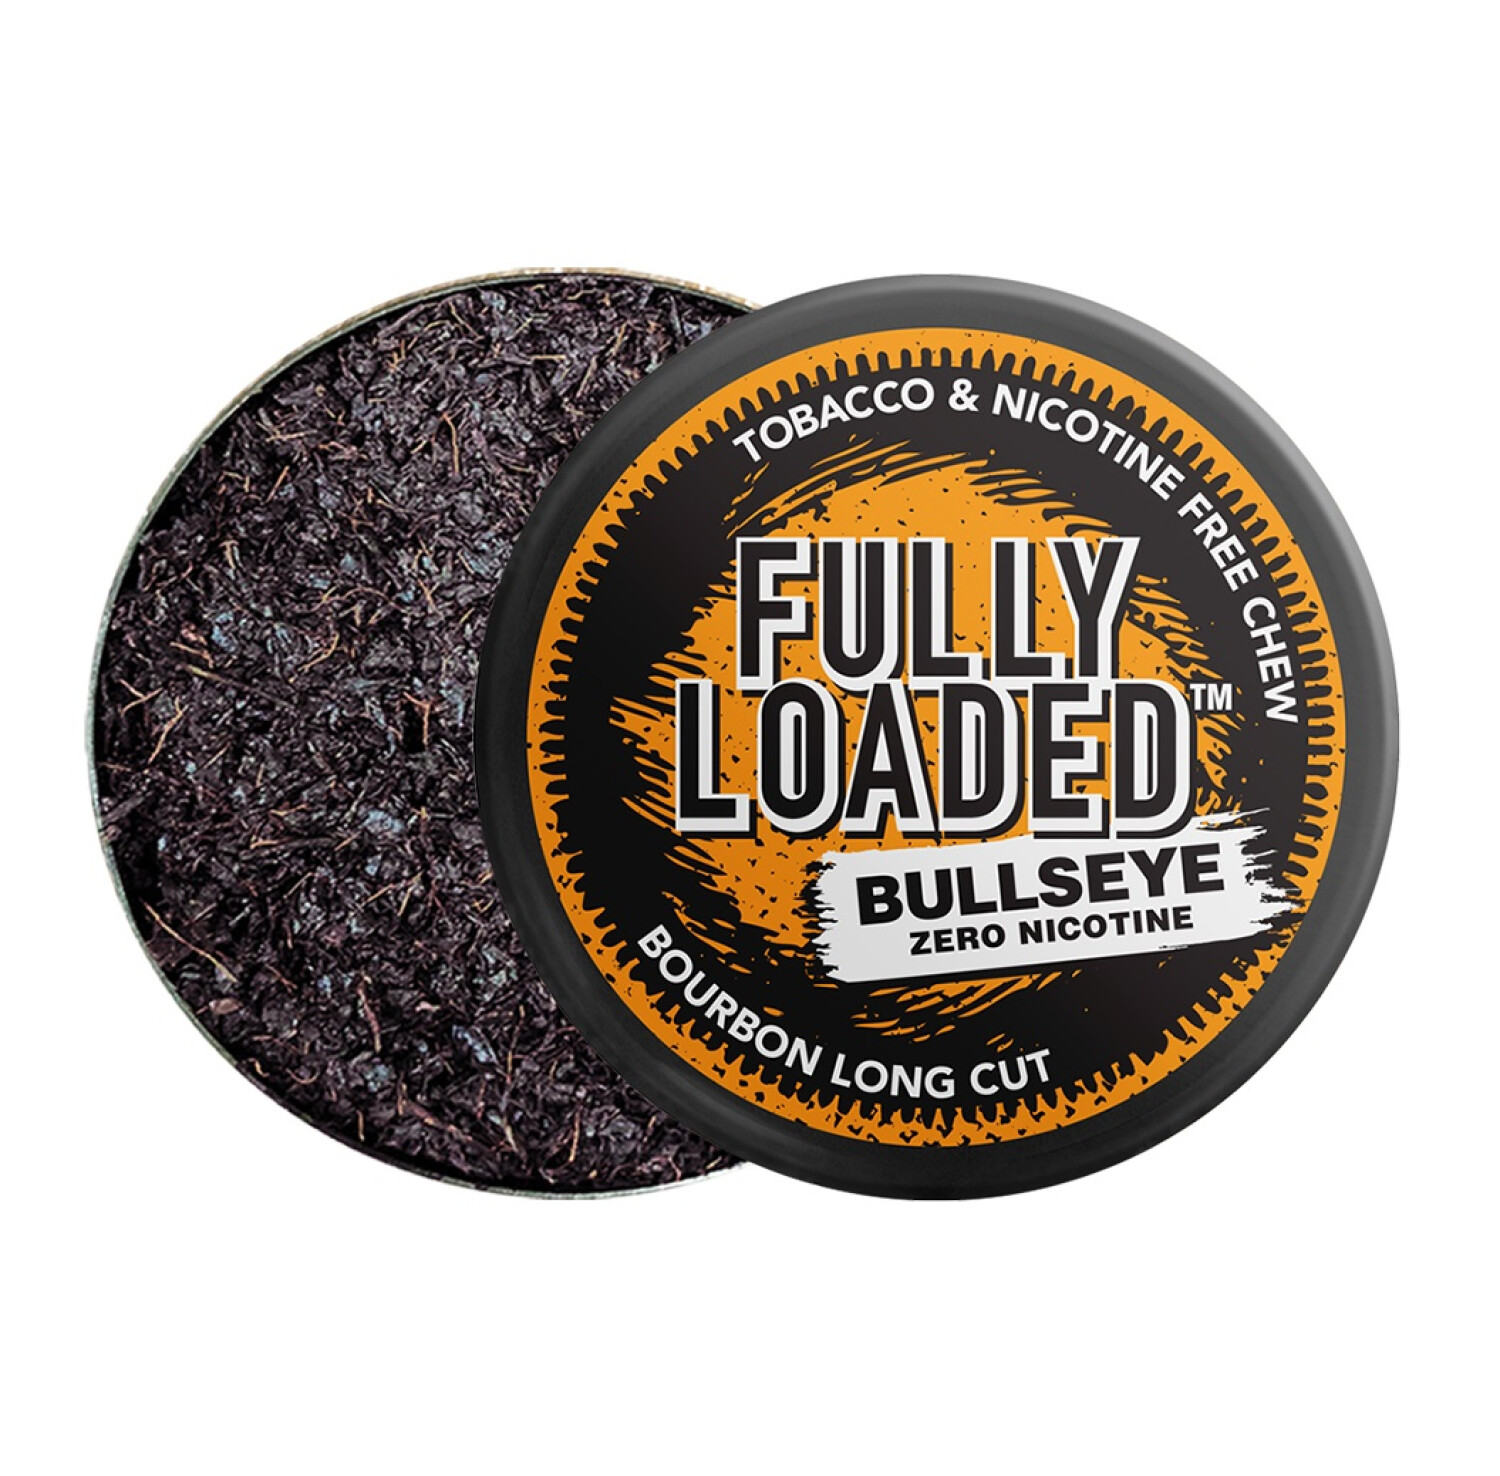 Fully Loaded Chew Tobacco and Nicotine Free Bourbon Bullseye Long Cut Unique Flavor, Chewing Alternative